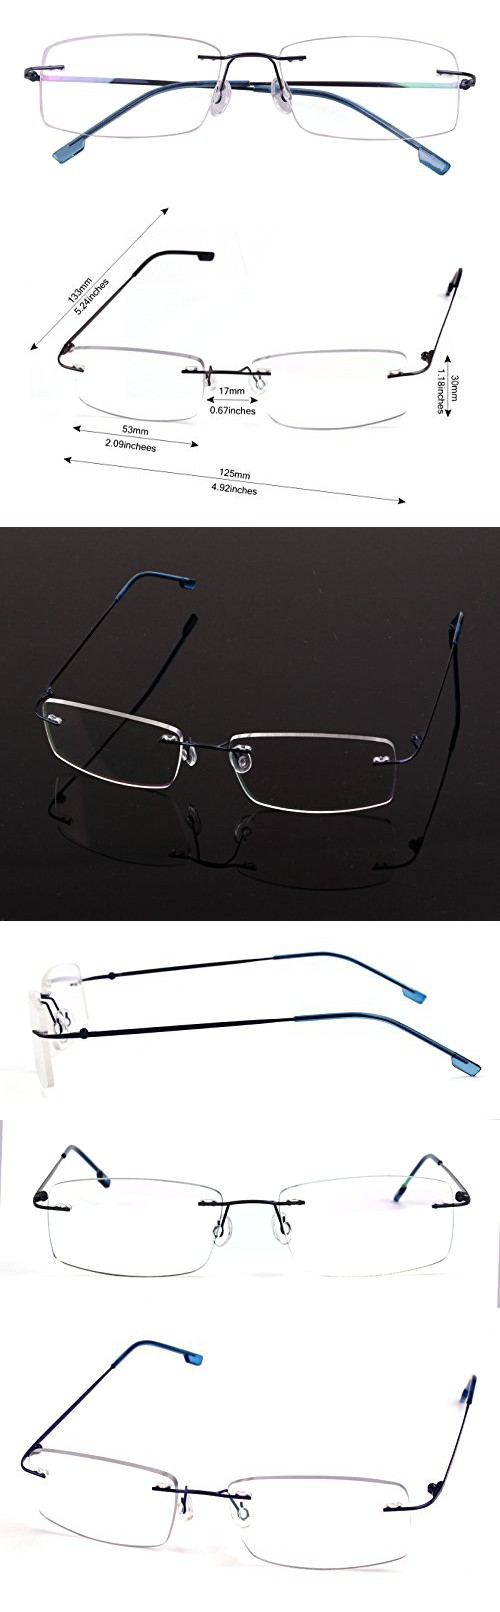 831d9ff0c81 Agstum Titanium Alloy Flexible Rimless Hinged Frame Prescription Eyeglasses  Rx (Blue